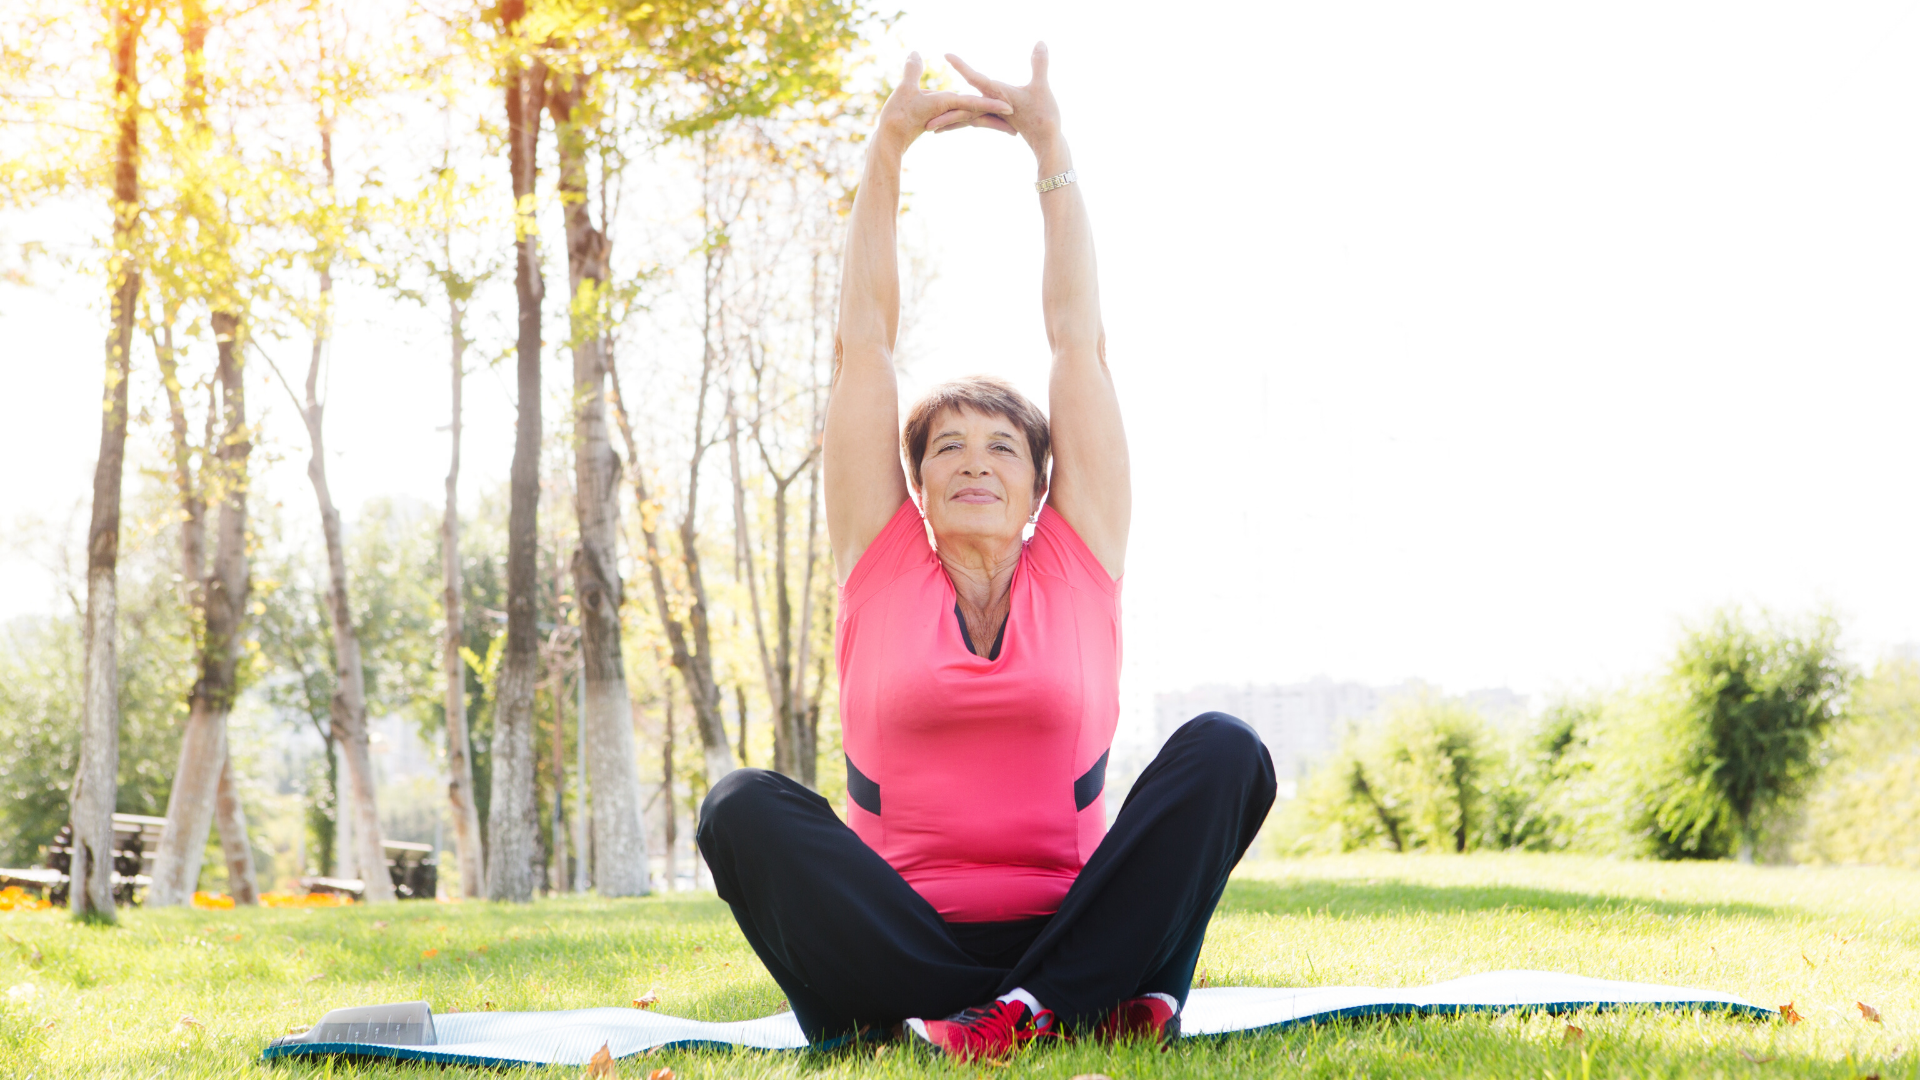 Woman practicing yoga outdoors in a park.